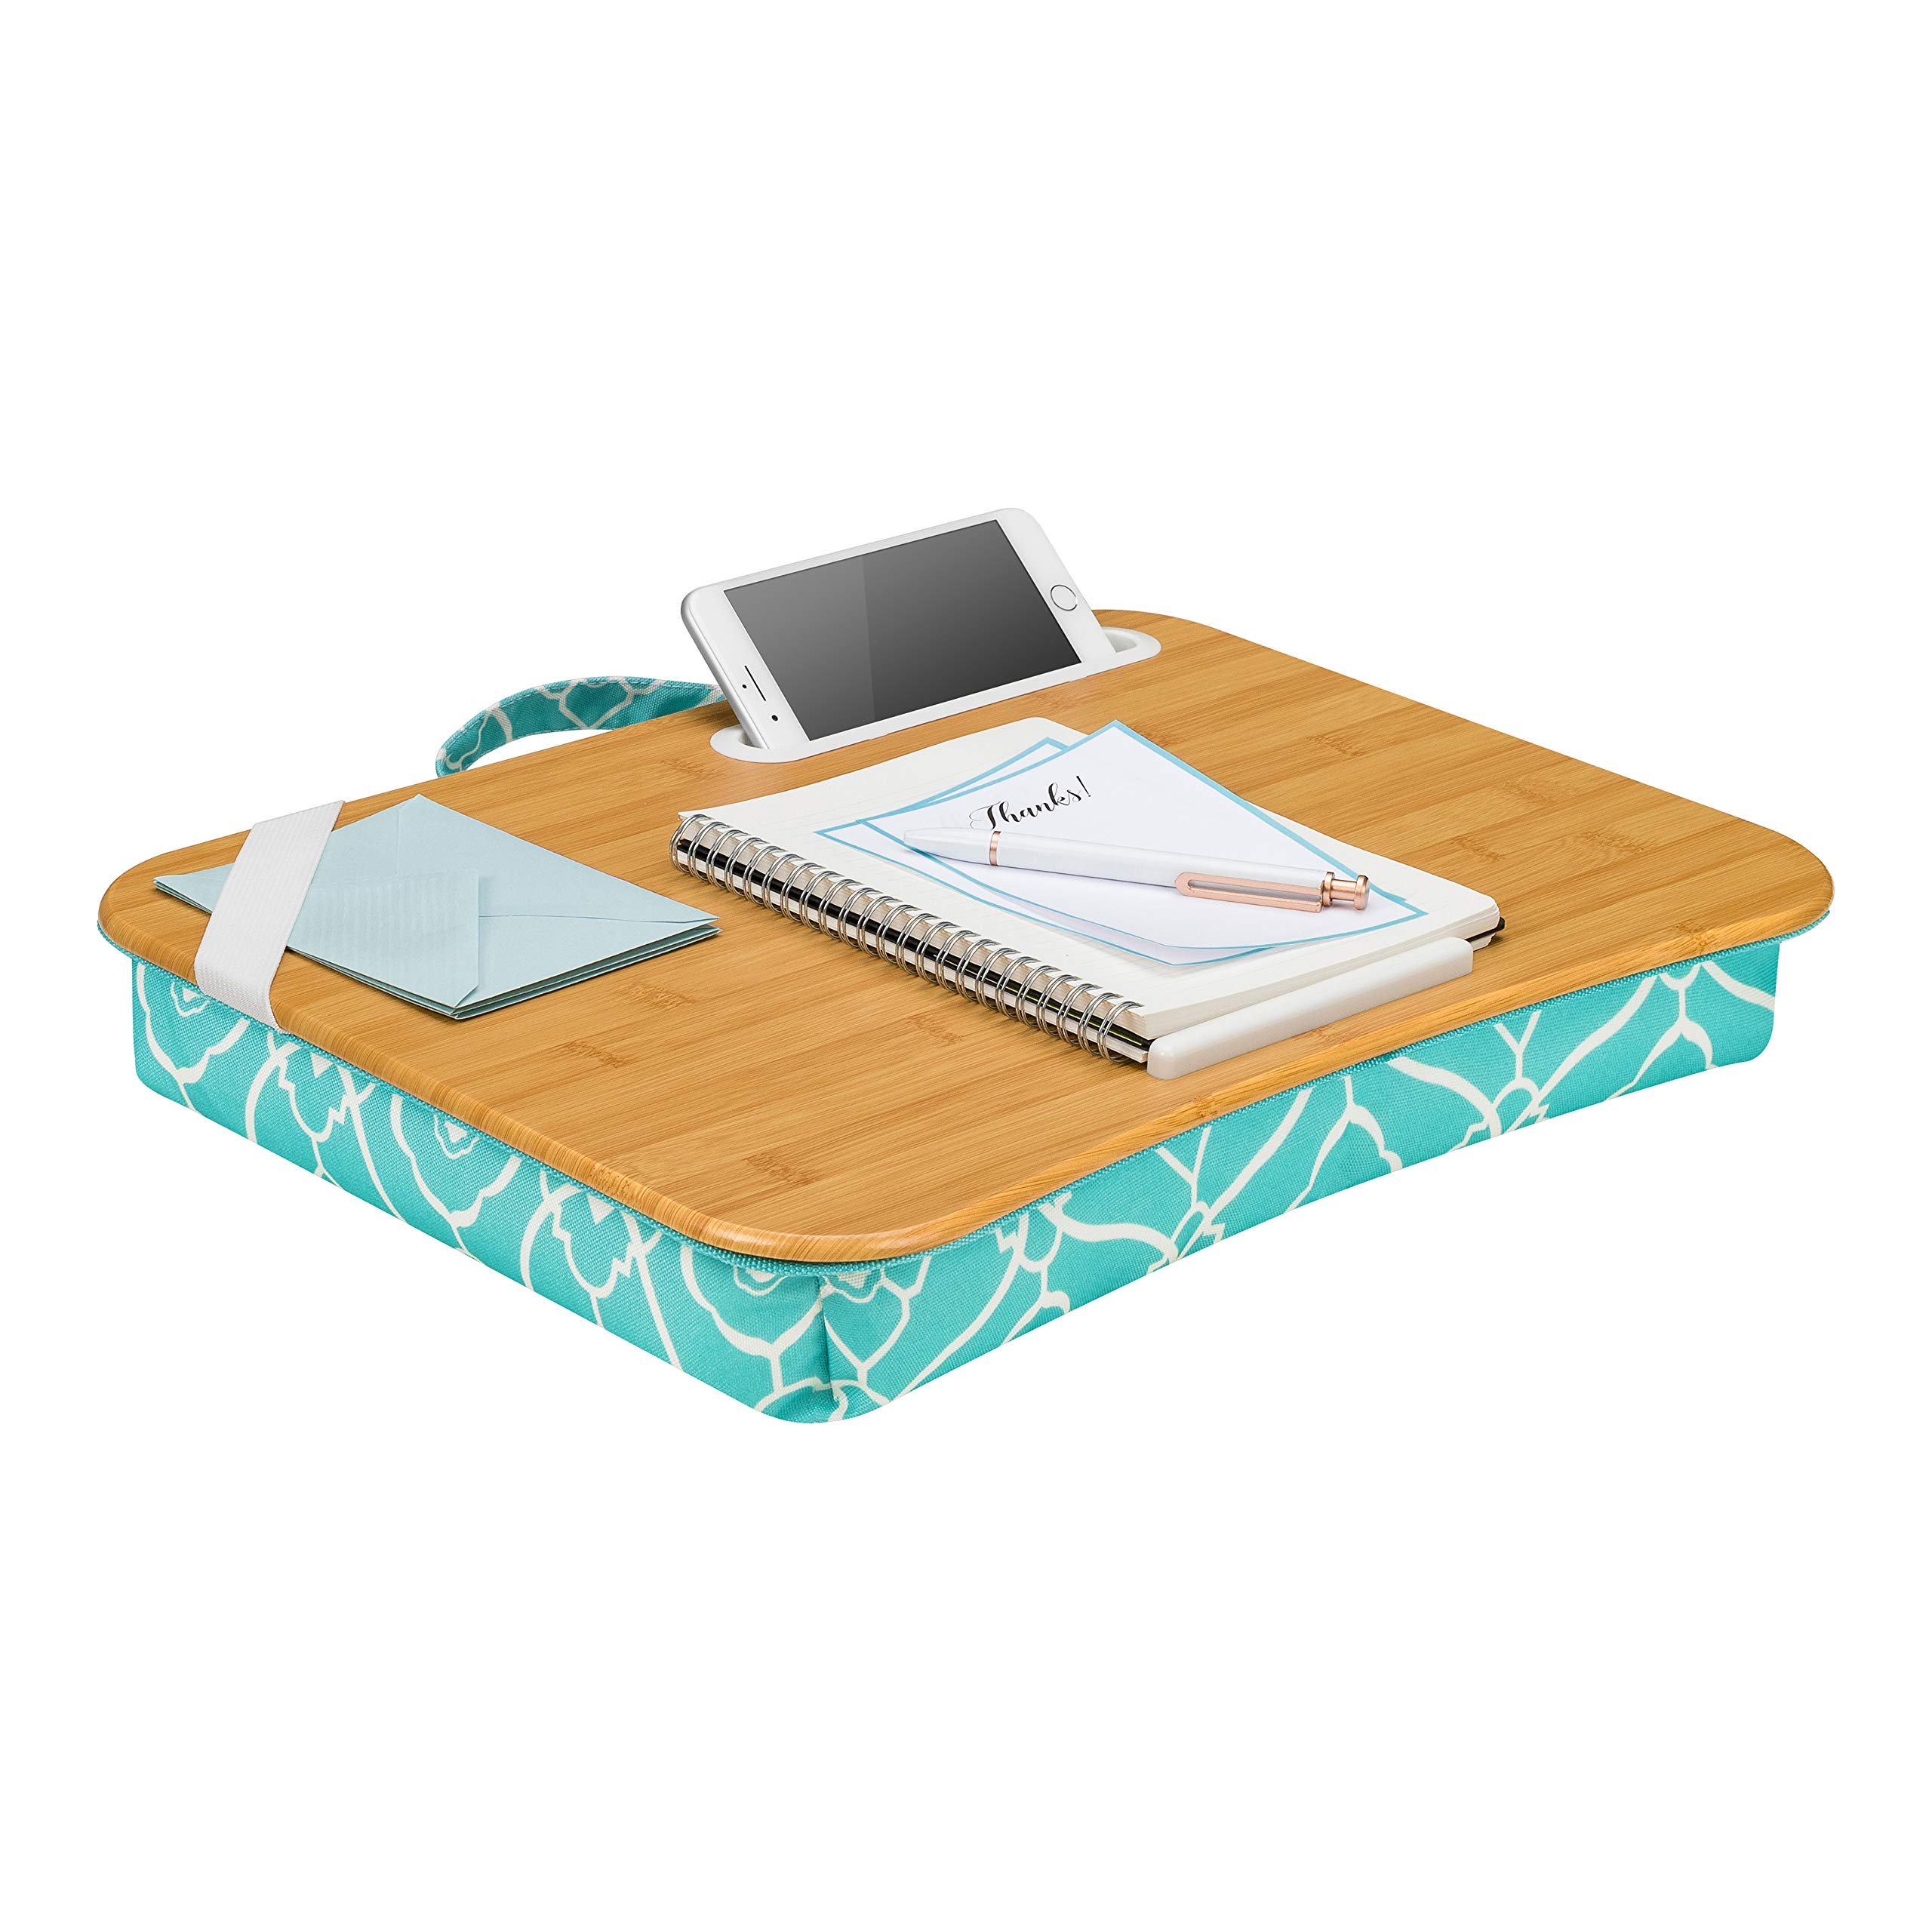 LapGear Designer Lap Desk with Phone Holder and Device Ledge - Aqua Trellis - Fits up to 15.6 Inch Laptops - Style No. 45422 by LapGear